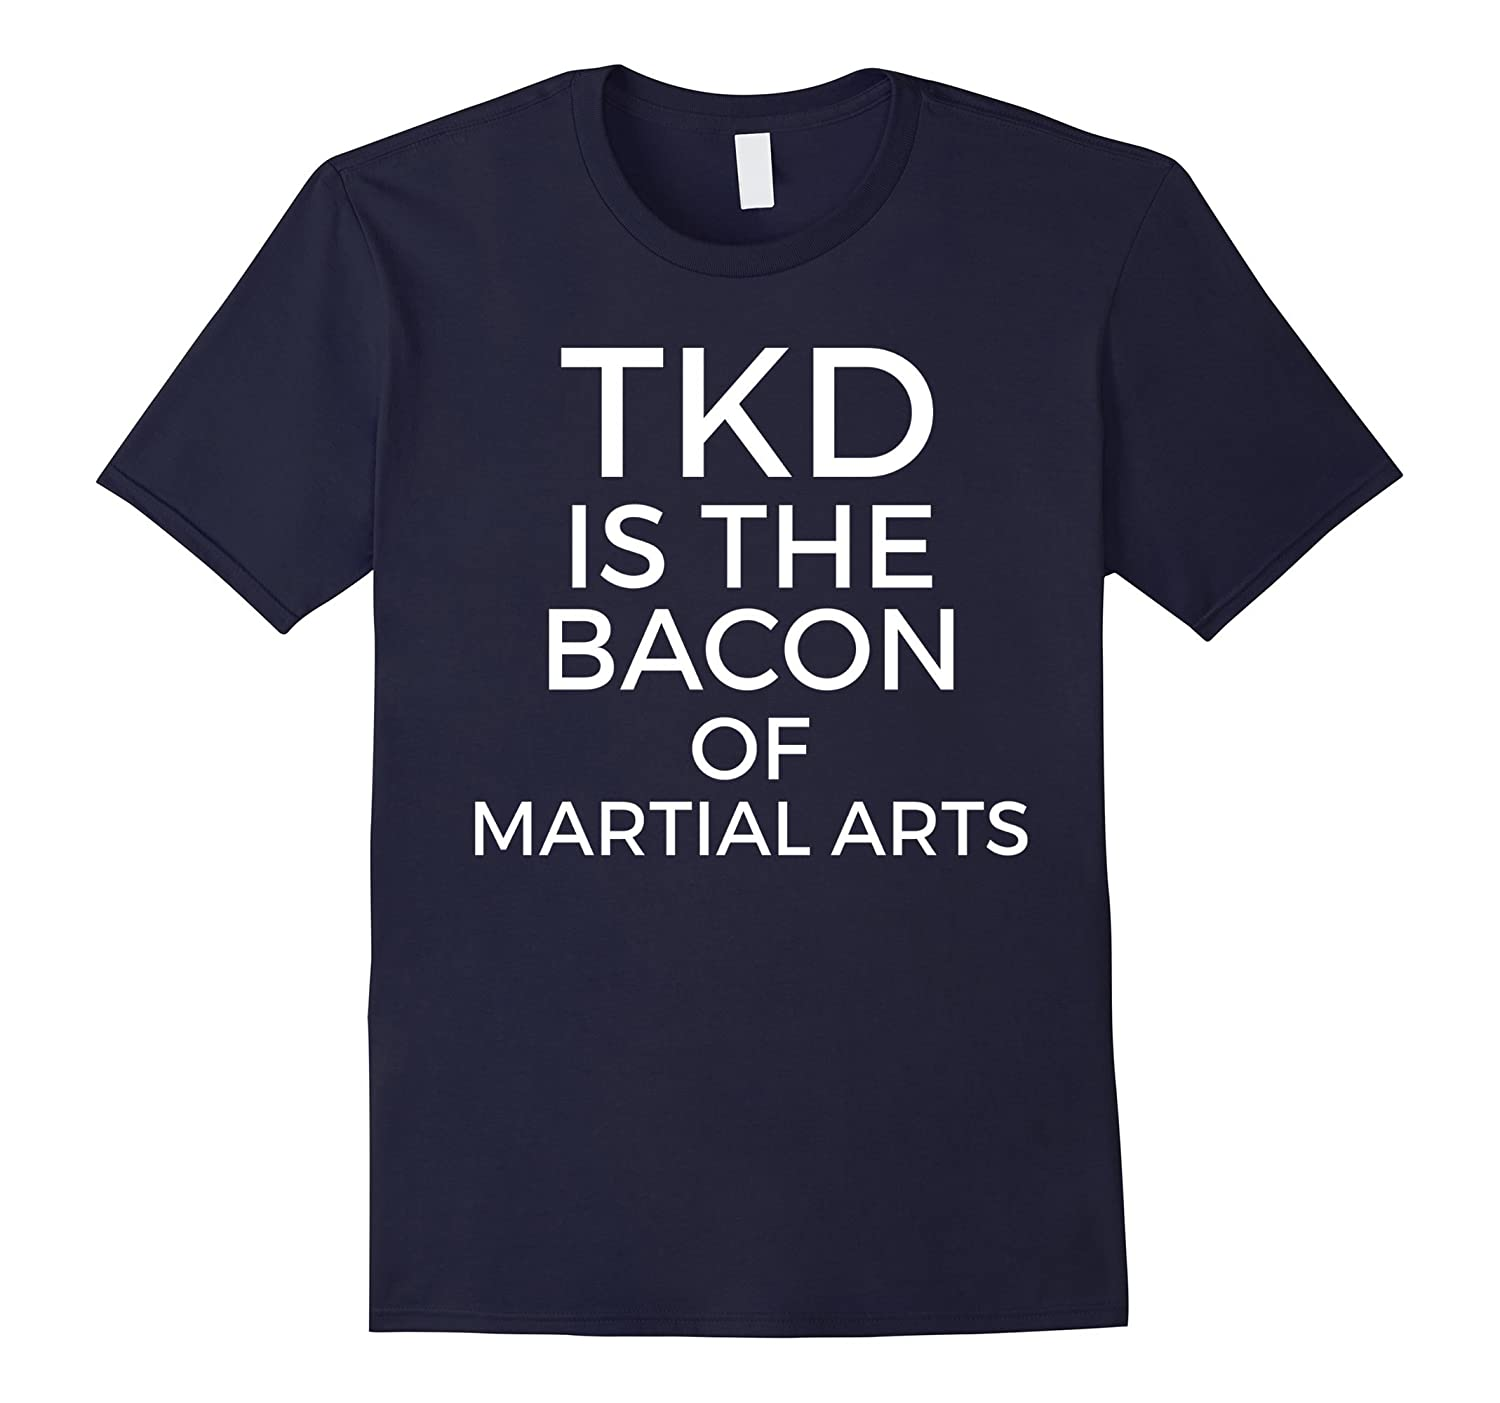 TKD is The Bacon of Martial Arts - Funny TKD Taekwondo Tee-TH